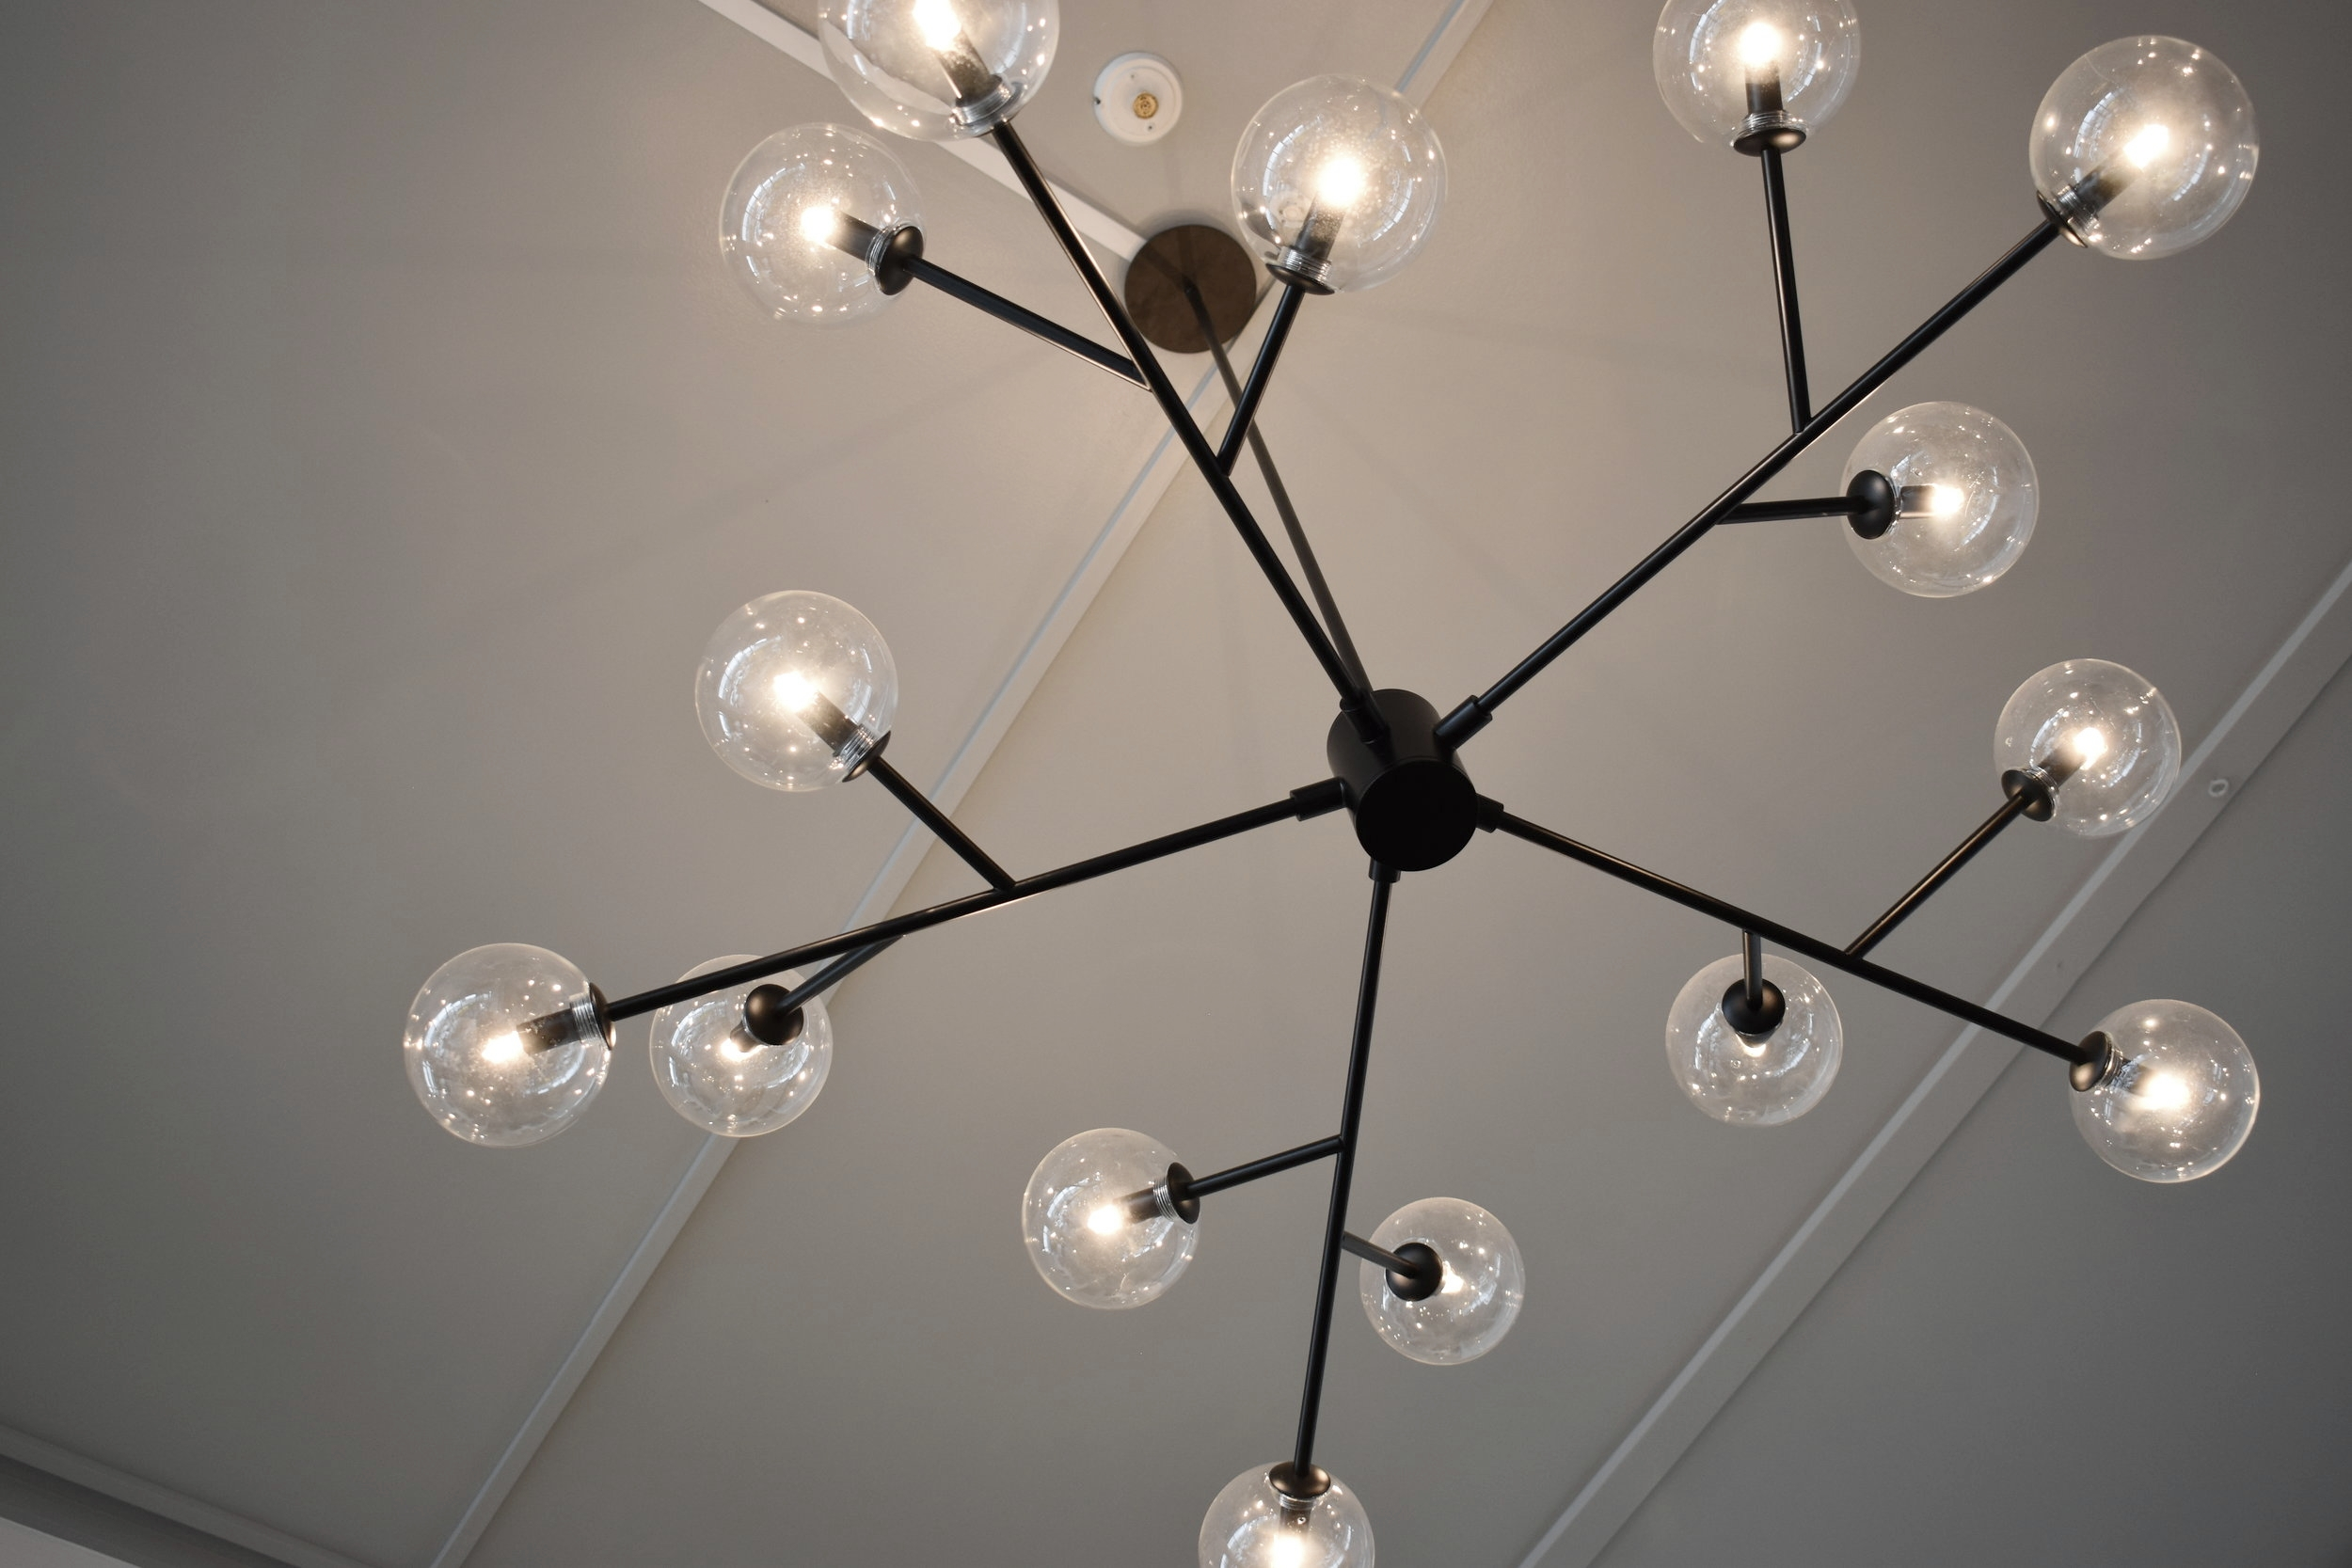 We painted the ceiling in the communal lounge area grey to make the lighting pop and define the space.